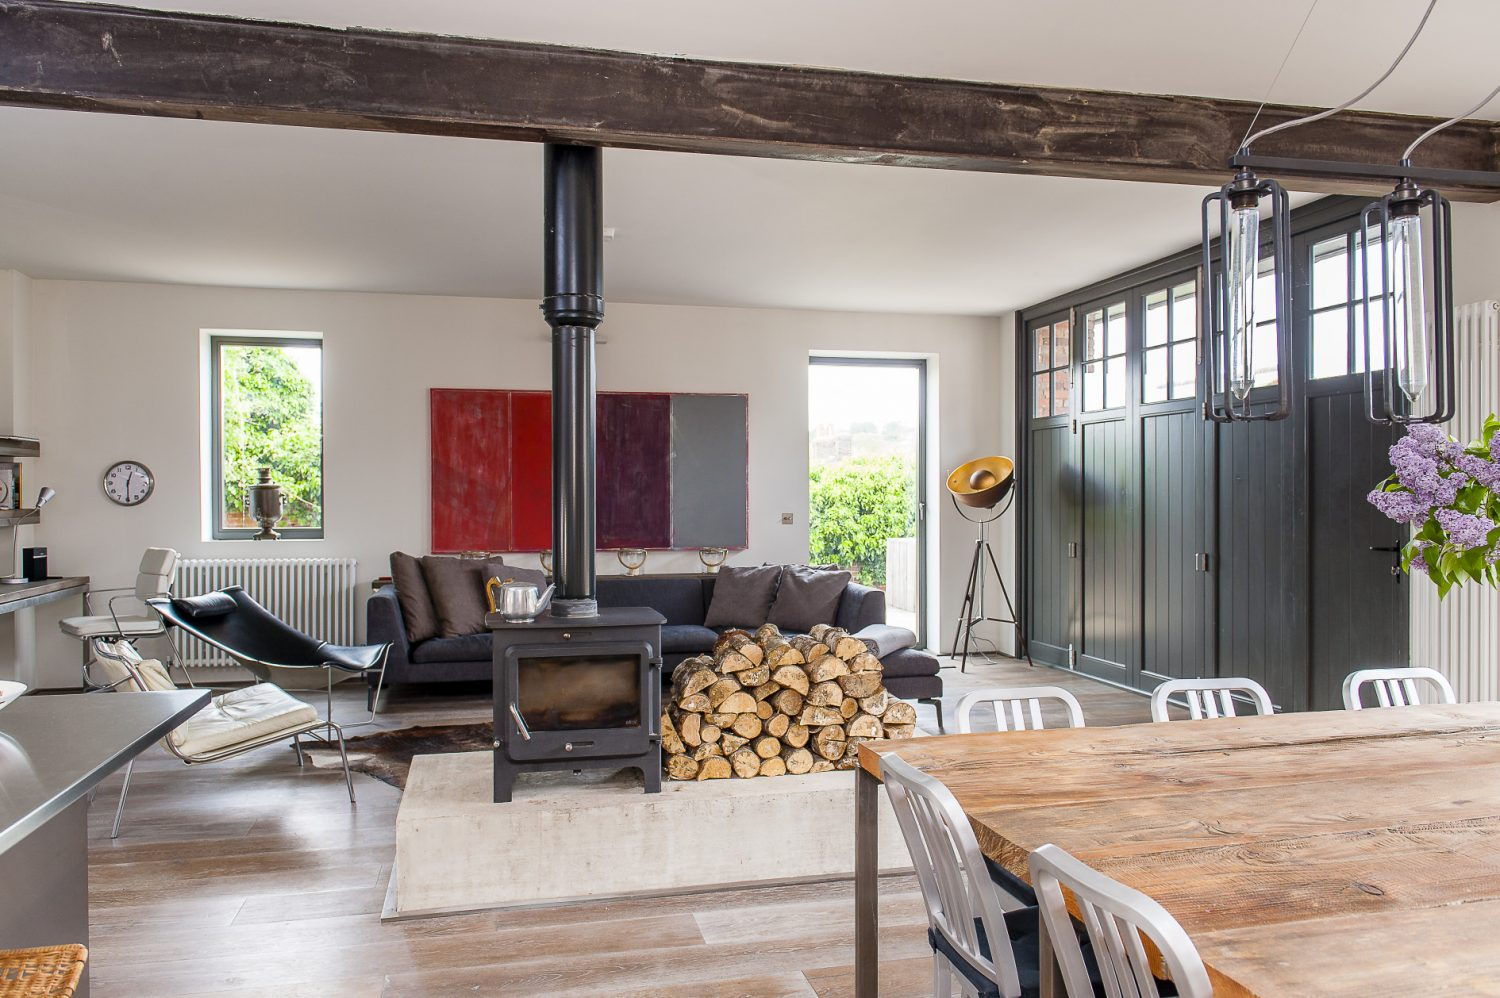 A new set of functional doors have been made in the same style. The double sided wood burning stove and adjacent log pile are housed on a huge concrete plinth, creating a focal point, whether the fire is lit or not